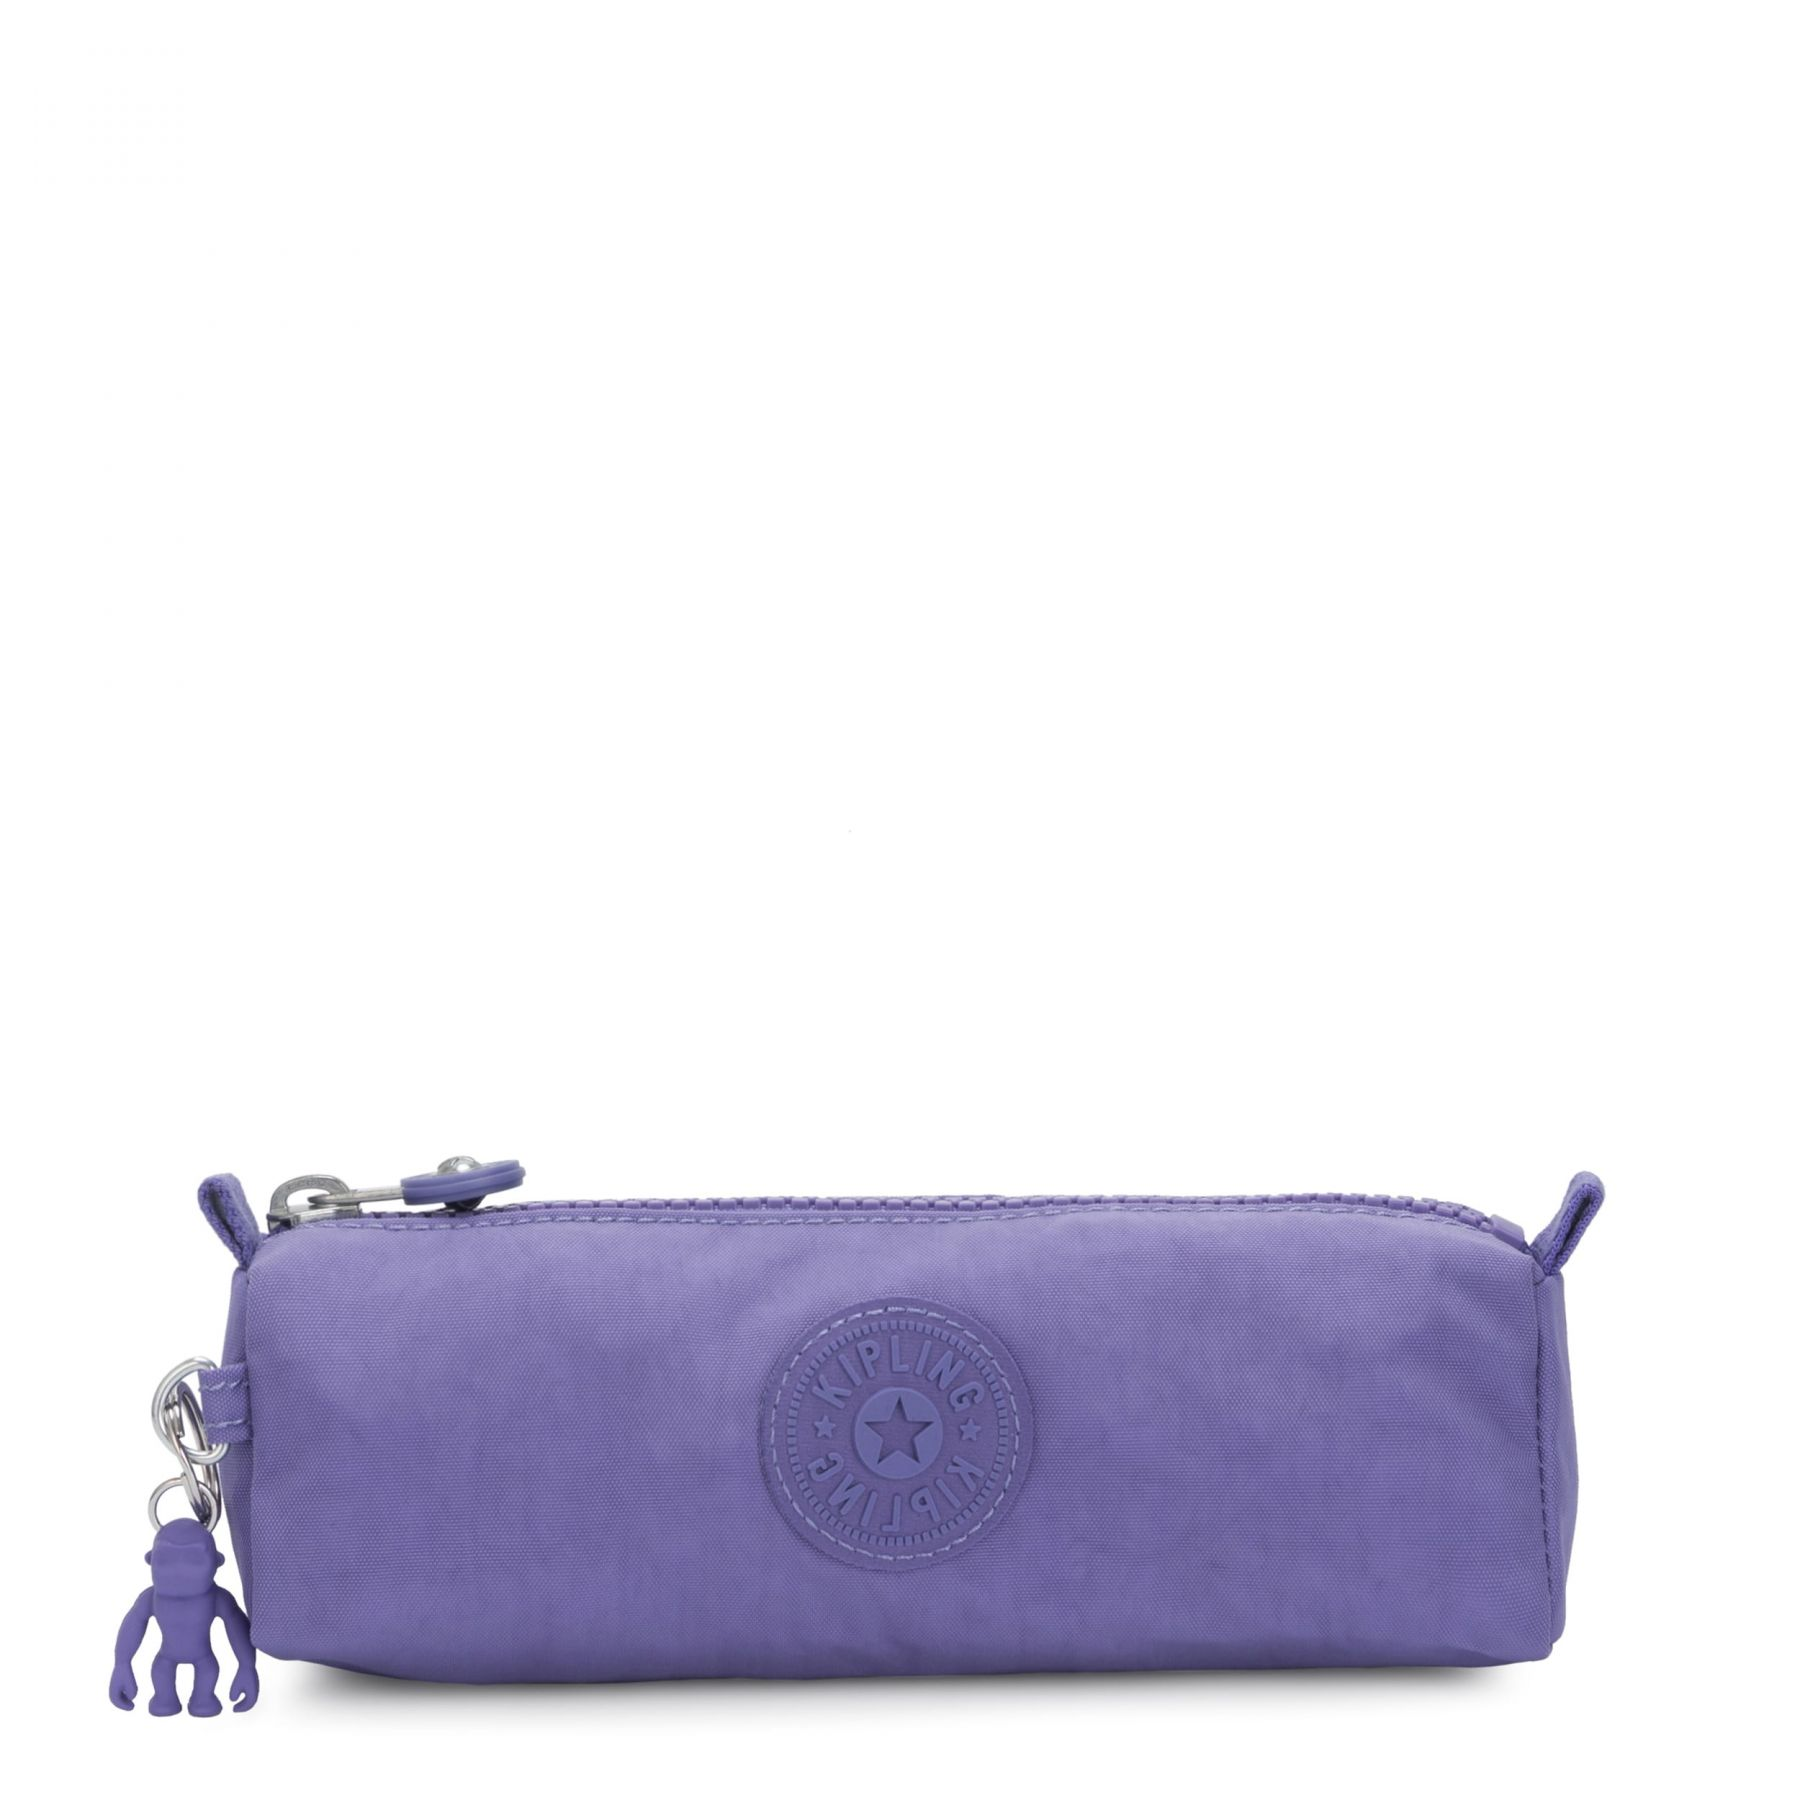 FREEDOM SCHOOL BAGS by Kipling